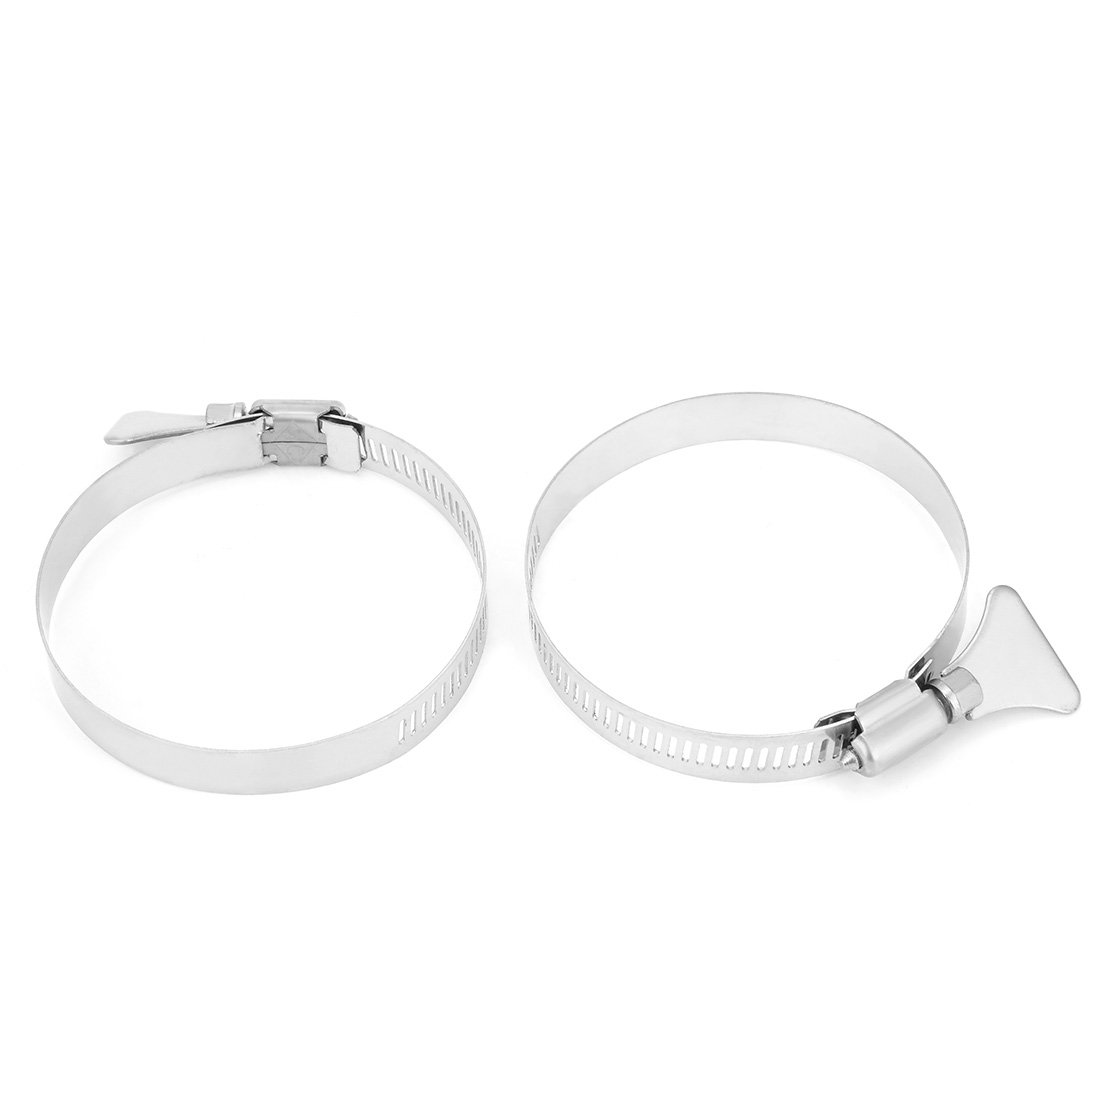 uxcell/® 6mm-12mm Clamping Range 304 Stainless Steel Butterfly Hose Clamp 10pcs